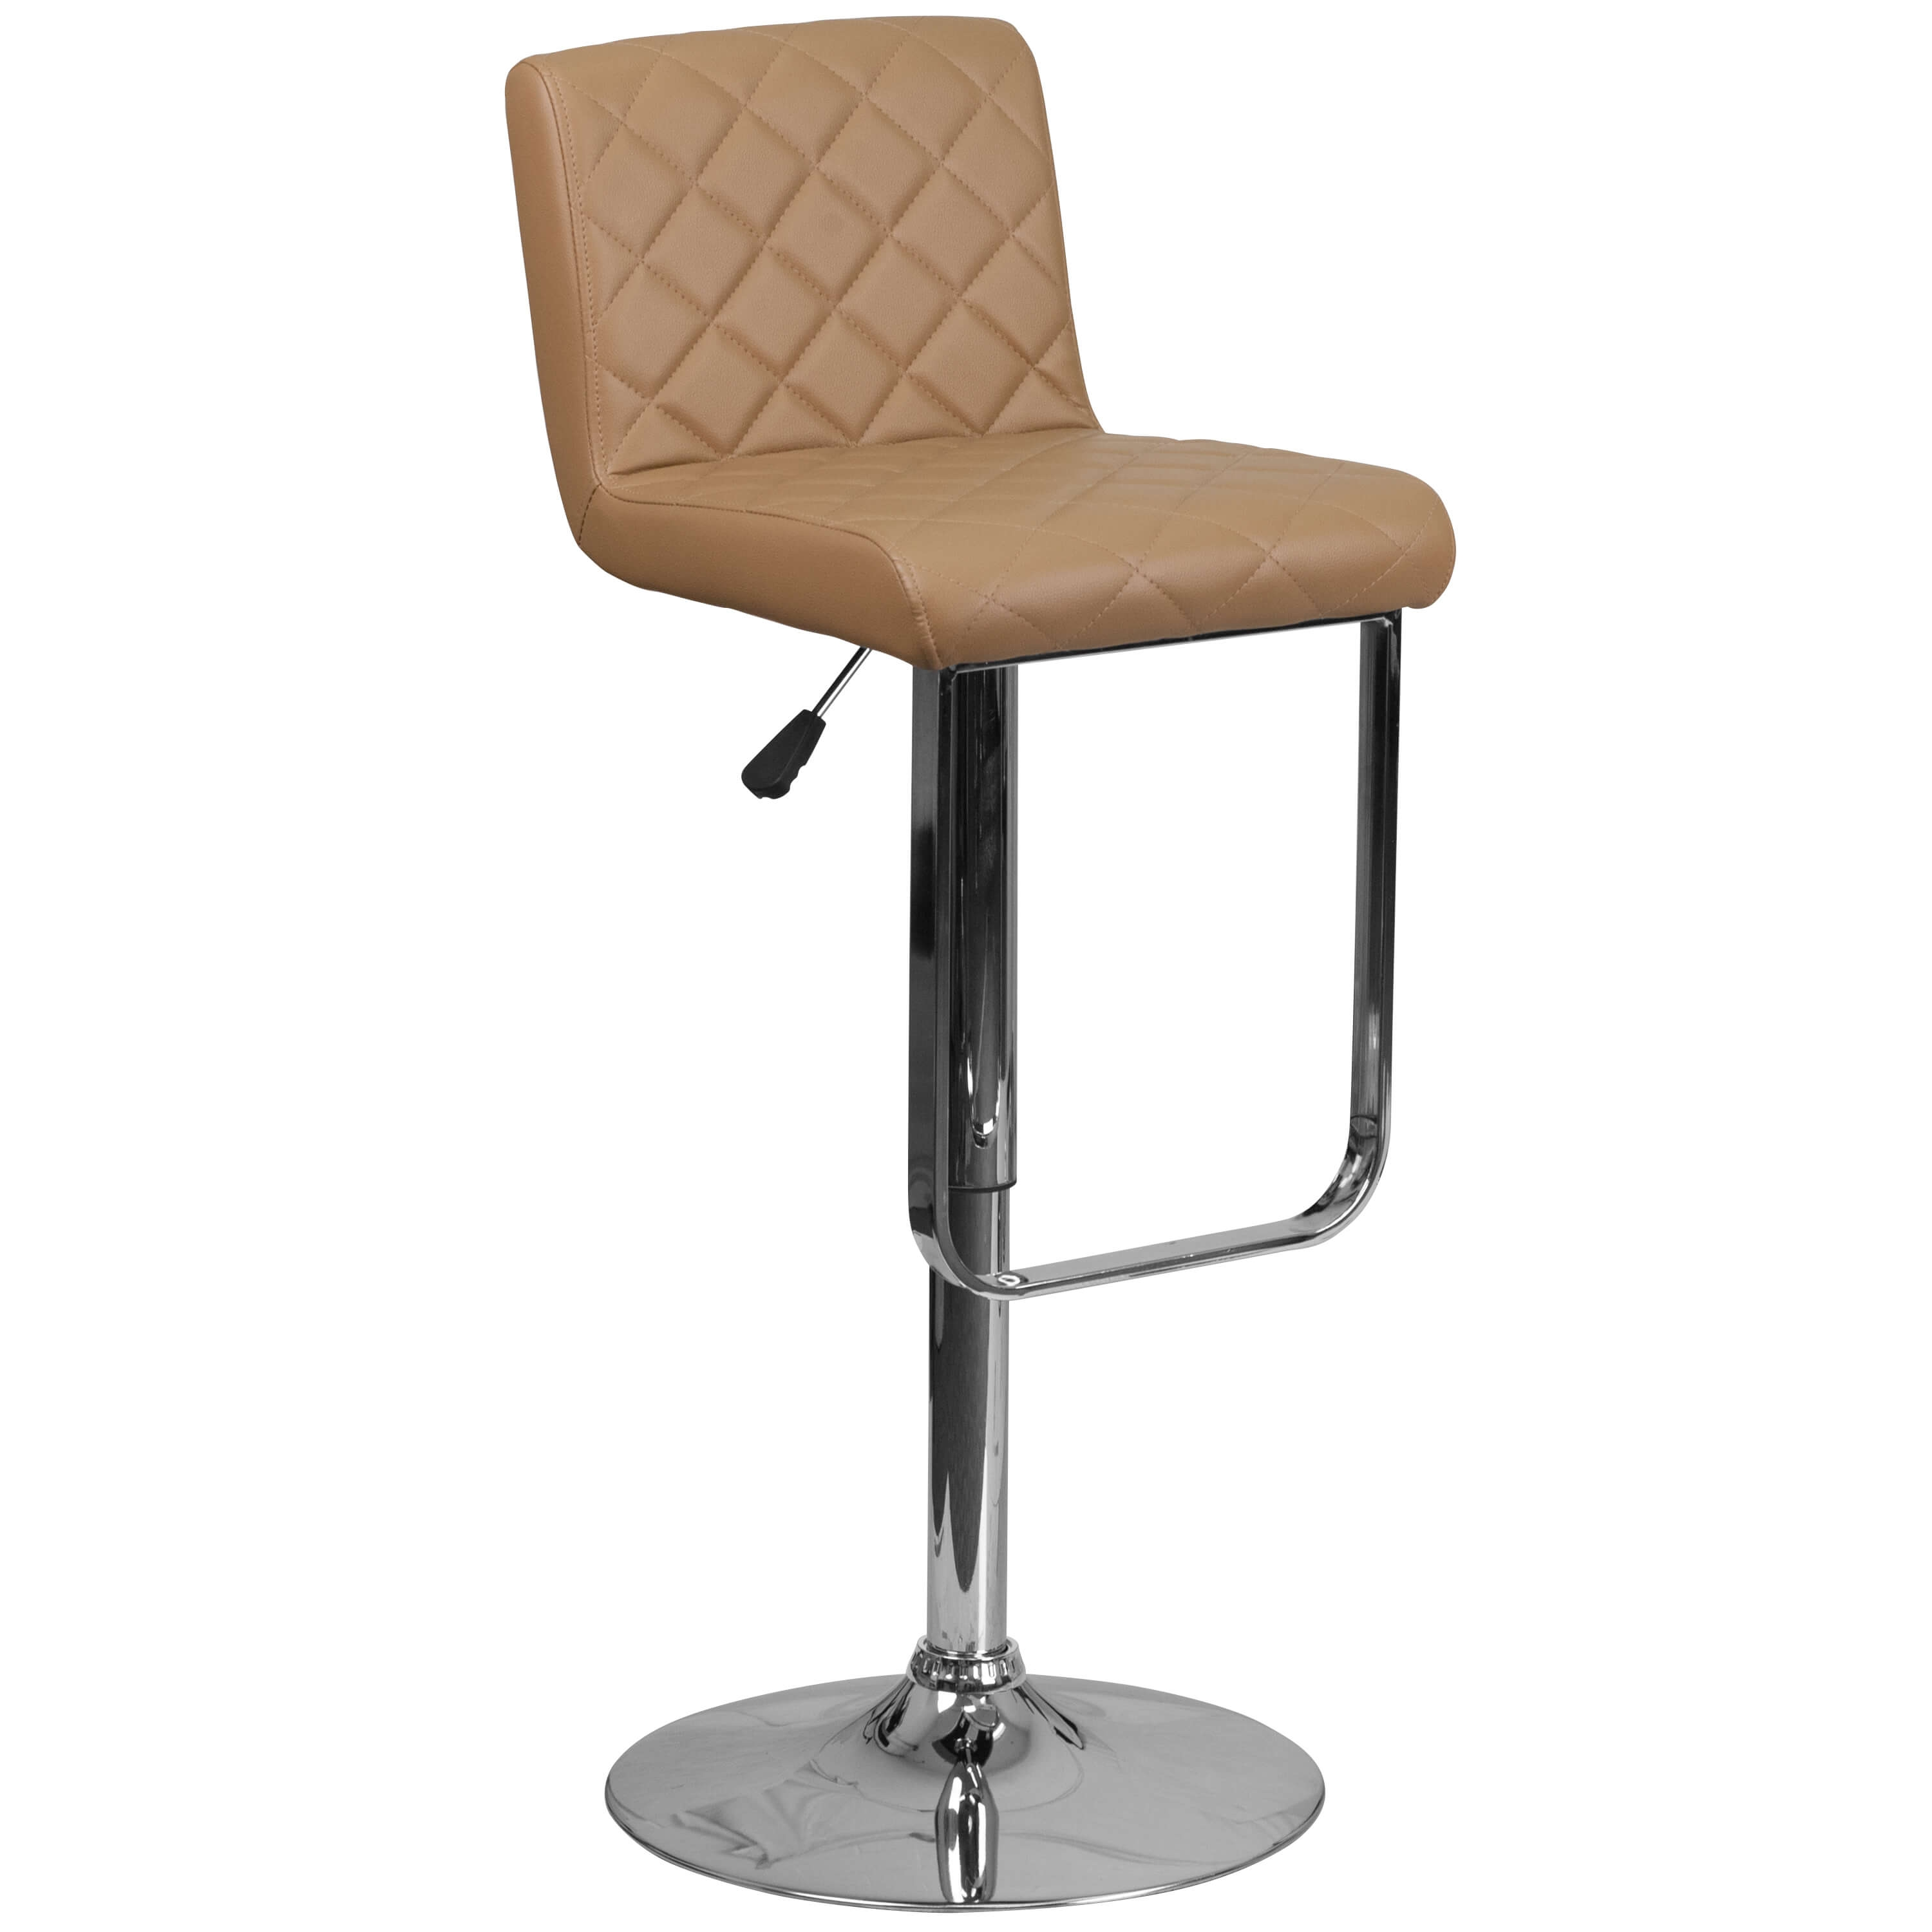 Cafe chairs CUB DS 8101 CAP GG FLA